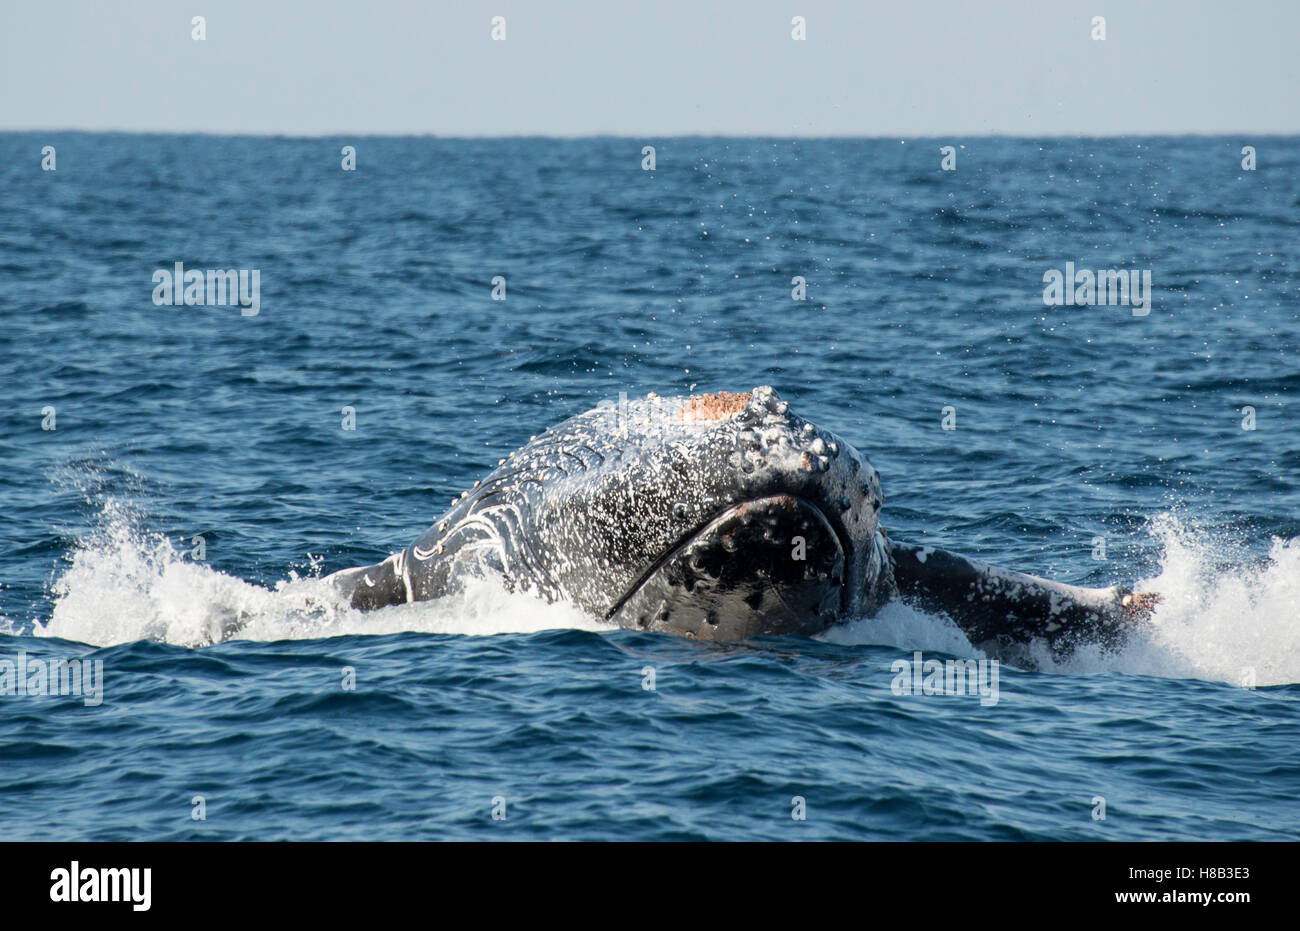 Humpback whale breaching off the east coast of South Africa during the sardine run season. - Stock Image